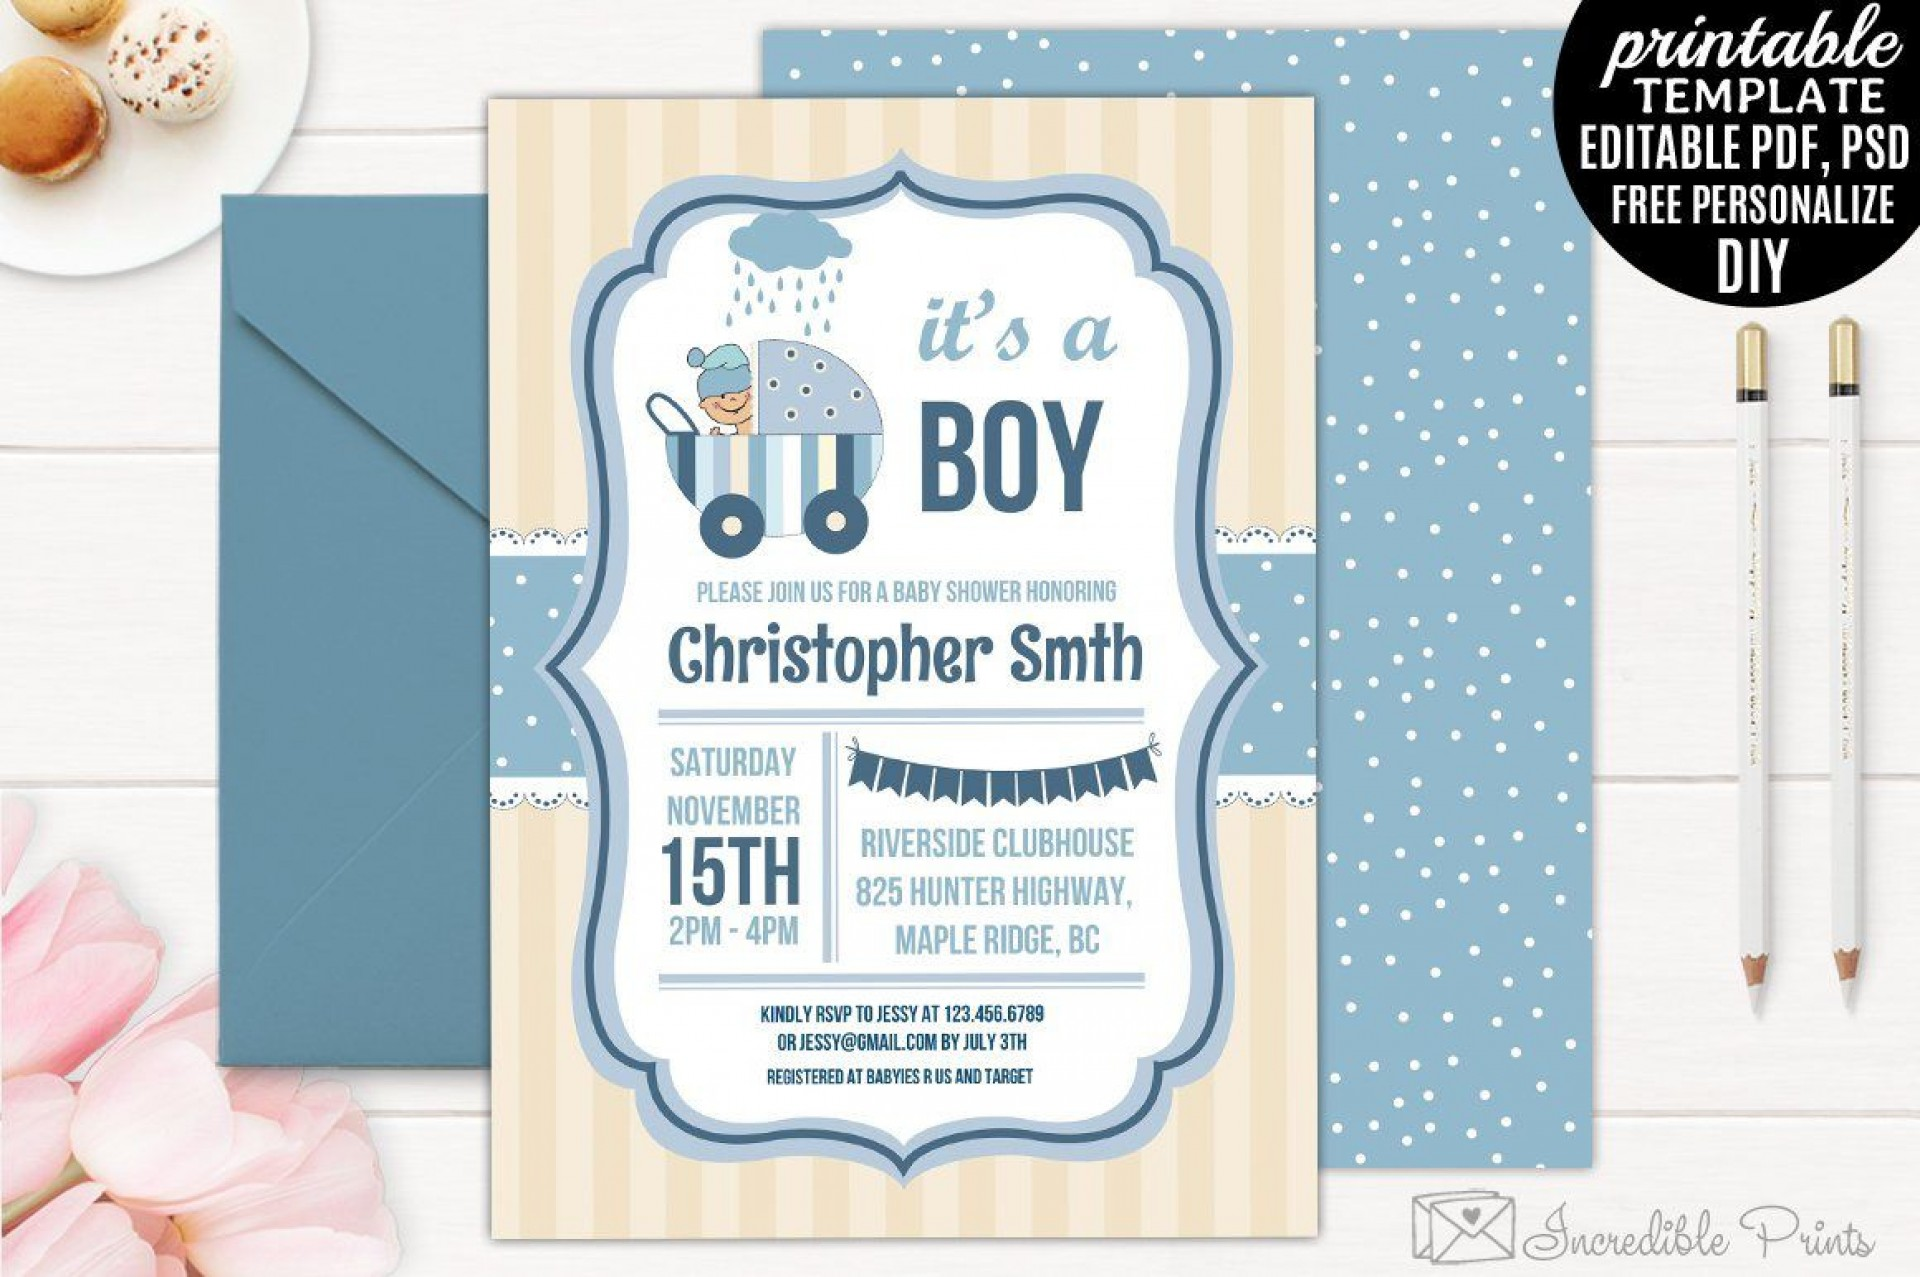 006 Unusual Baby Shower Card Template Psd Concept 1920